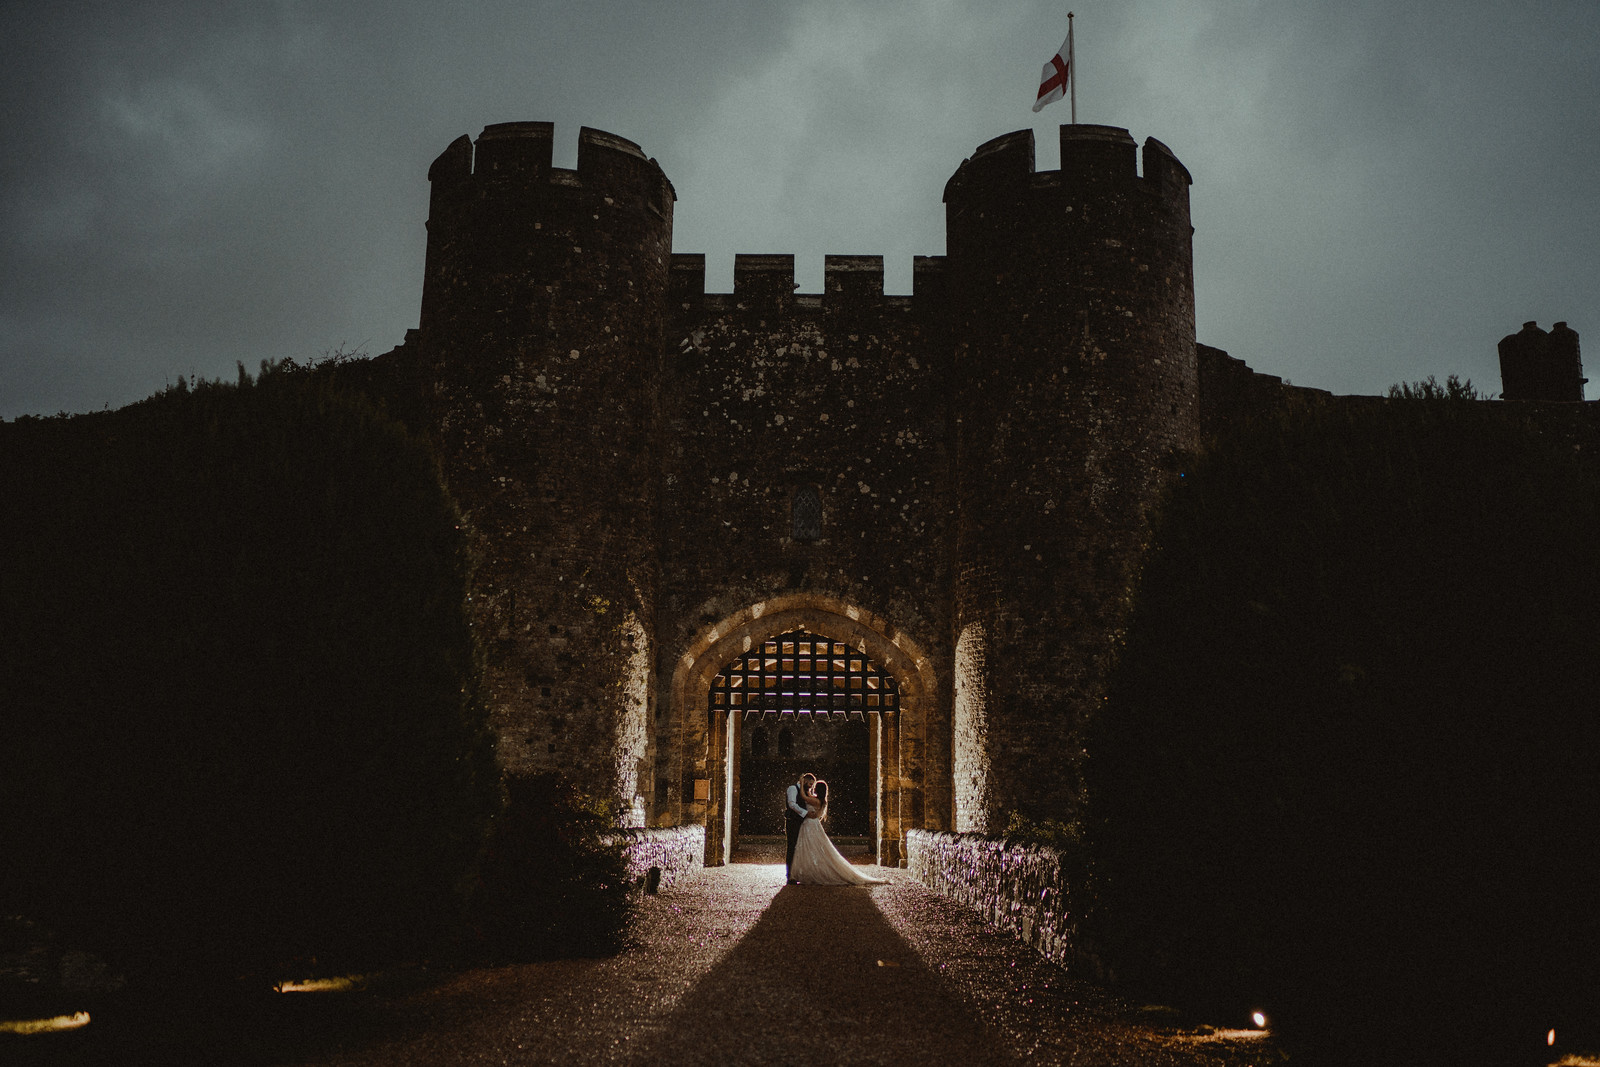 Bride and groom wedding photo with light projecting on the castle